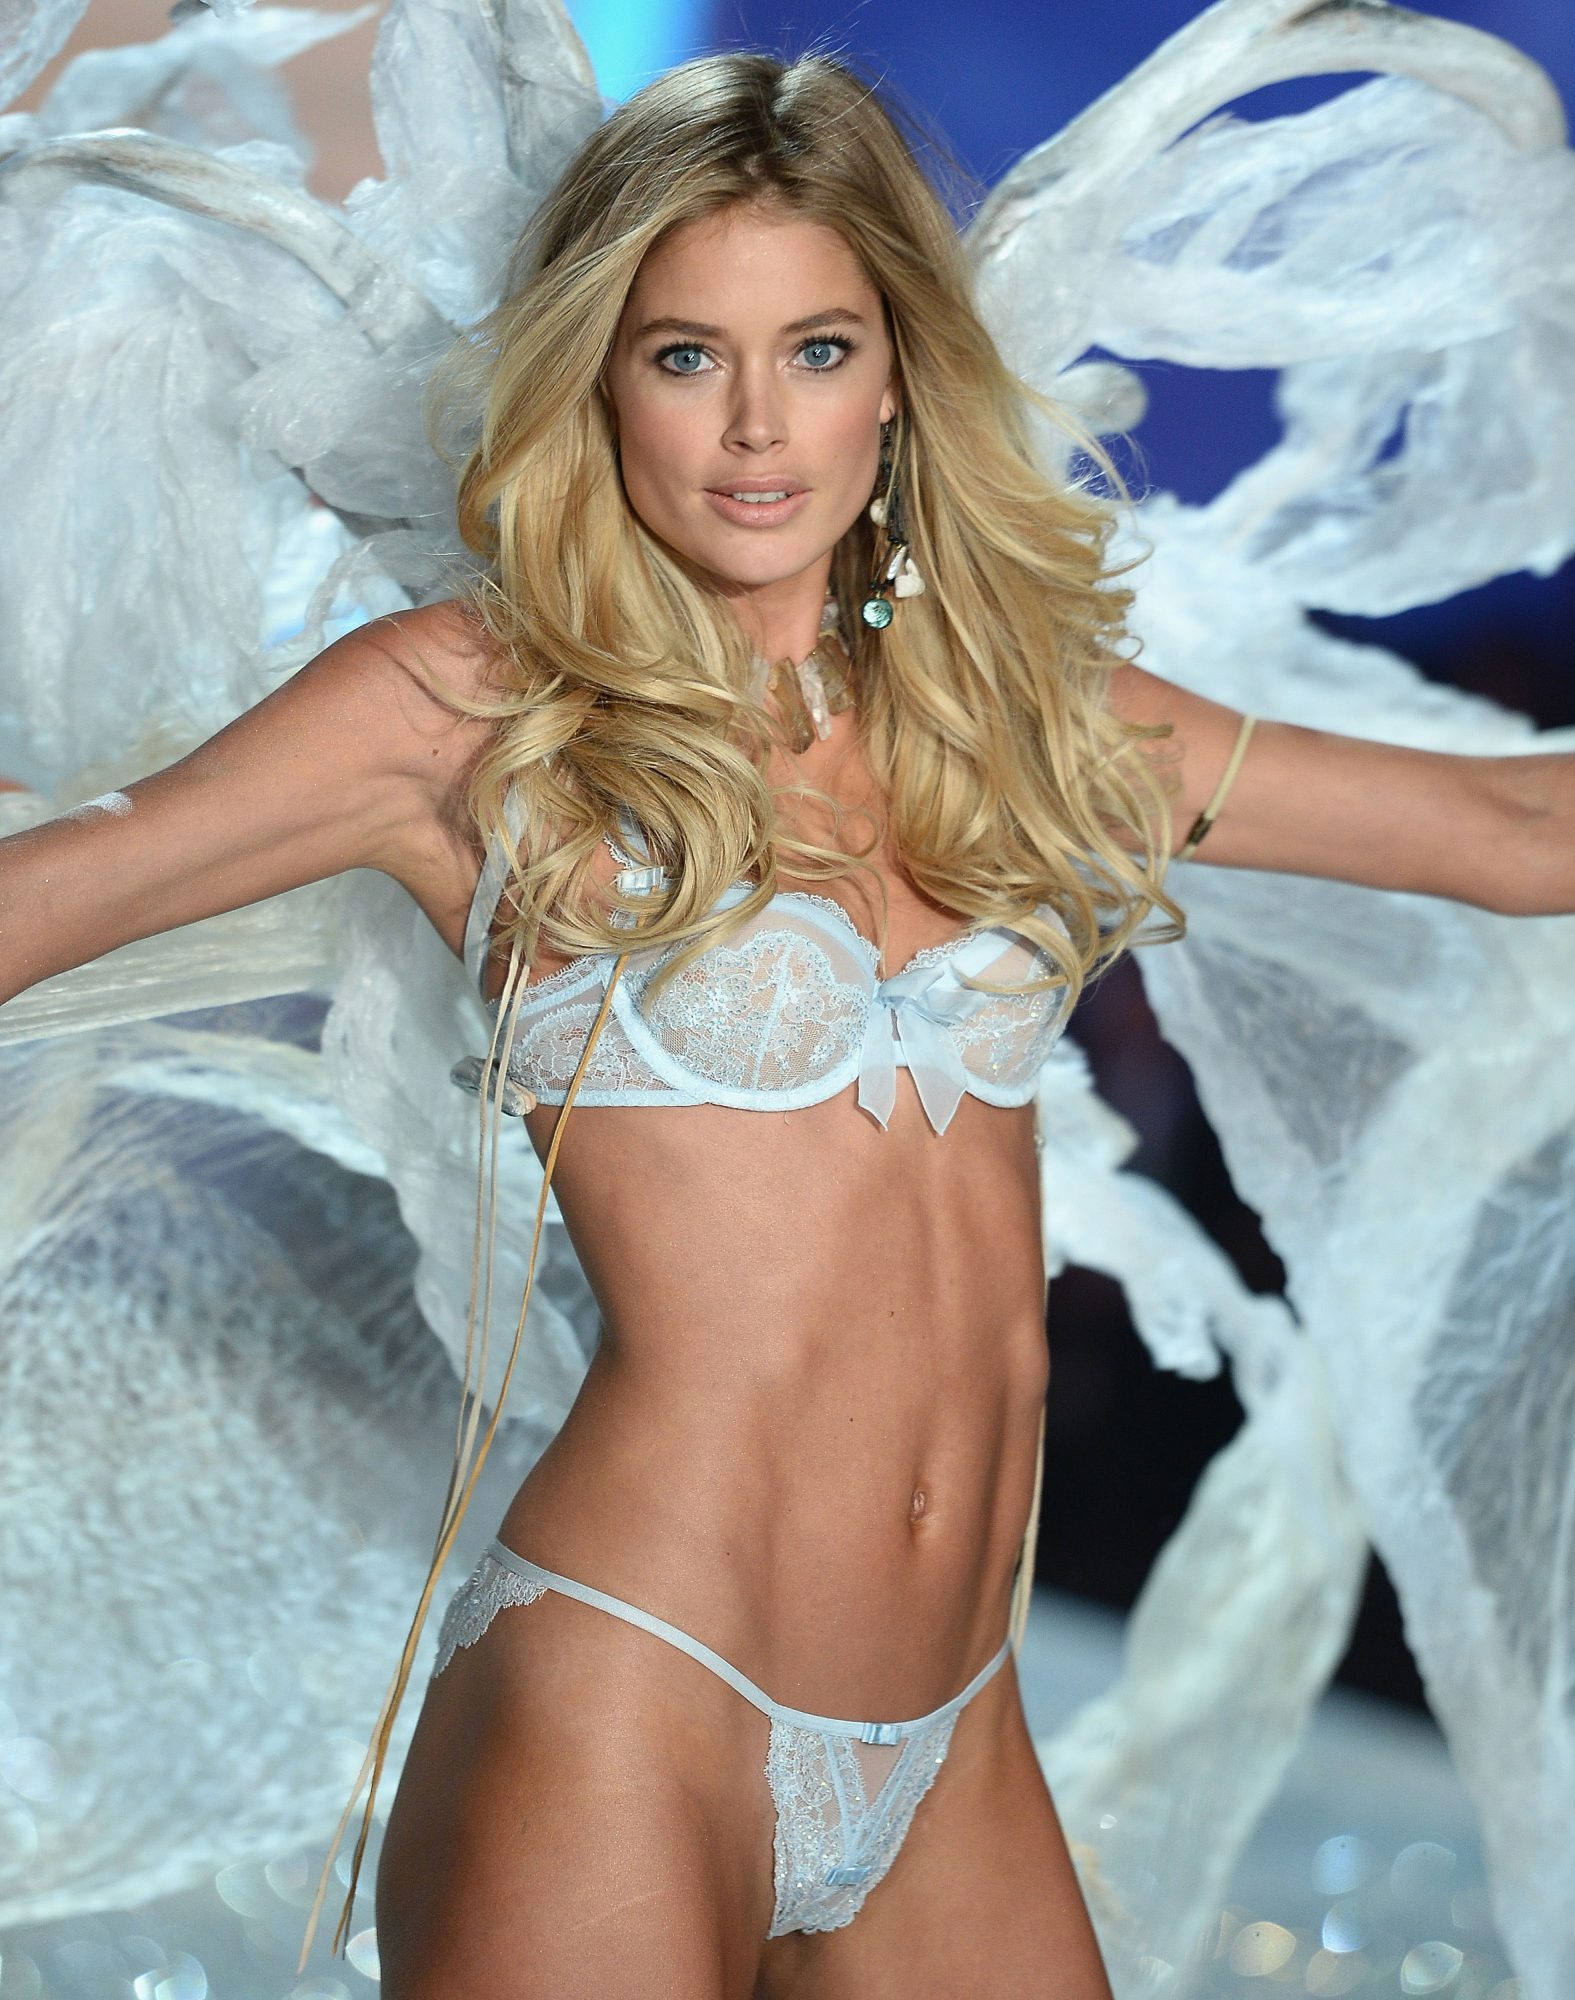 NEW YORK, NY - NOVEMBER 13: Model Doutzen Kroes walks the runway at the 2013 Victoria's Secret Fashion Show at Lexington Avenue Armory on November 13, 2013 in New York City. (Photo by Dimitrios Kambouris/Getty Images for Victoria's Secret)